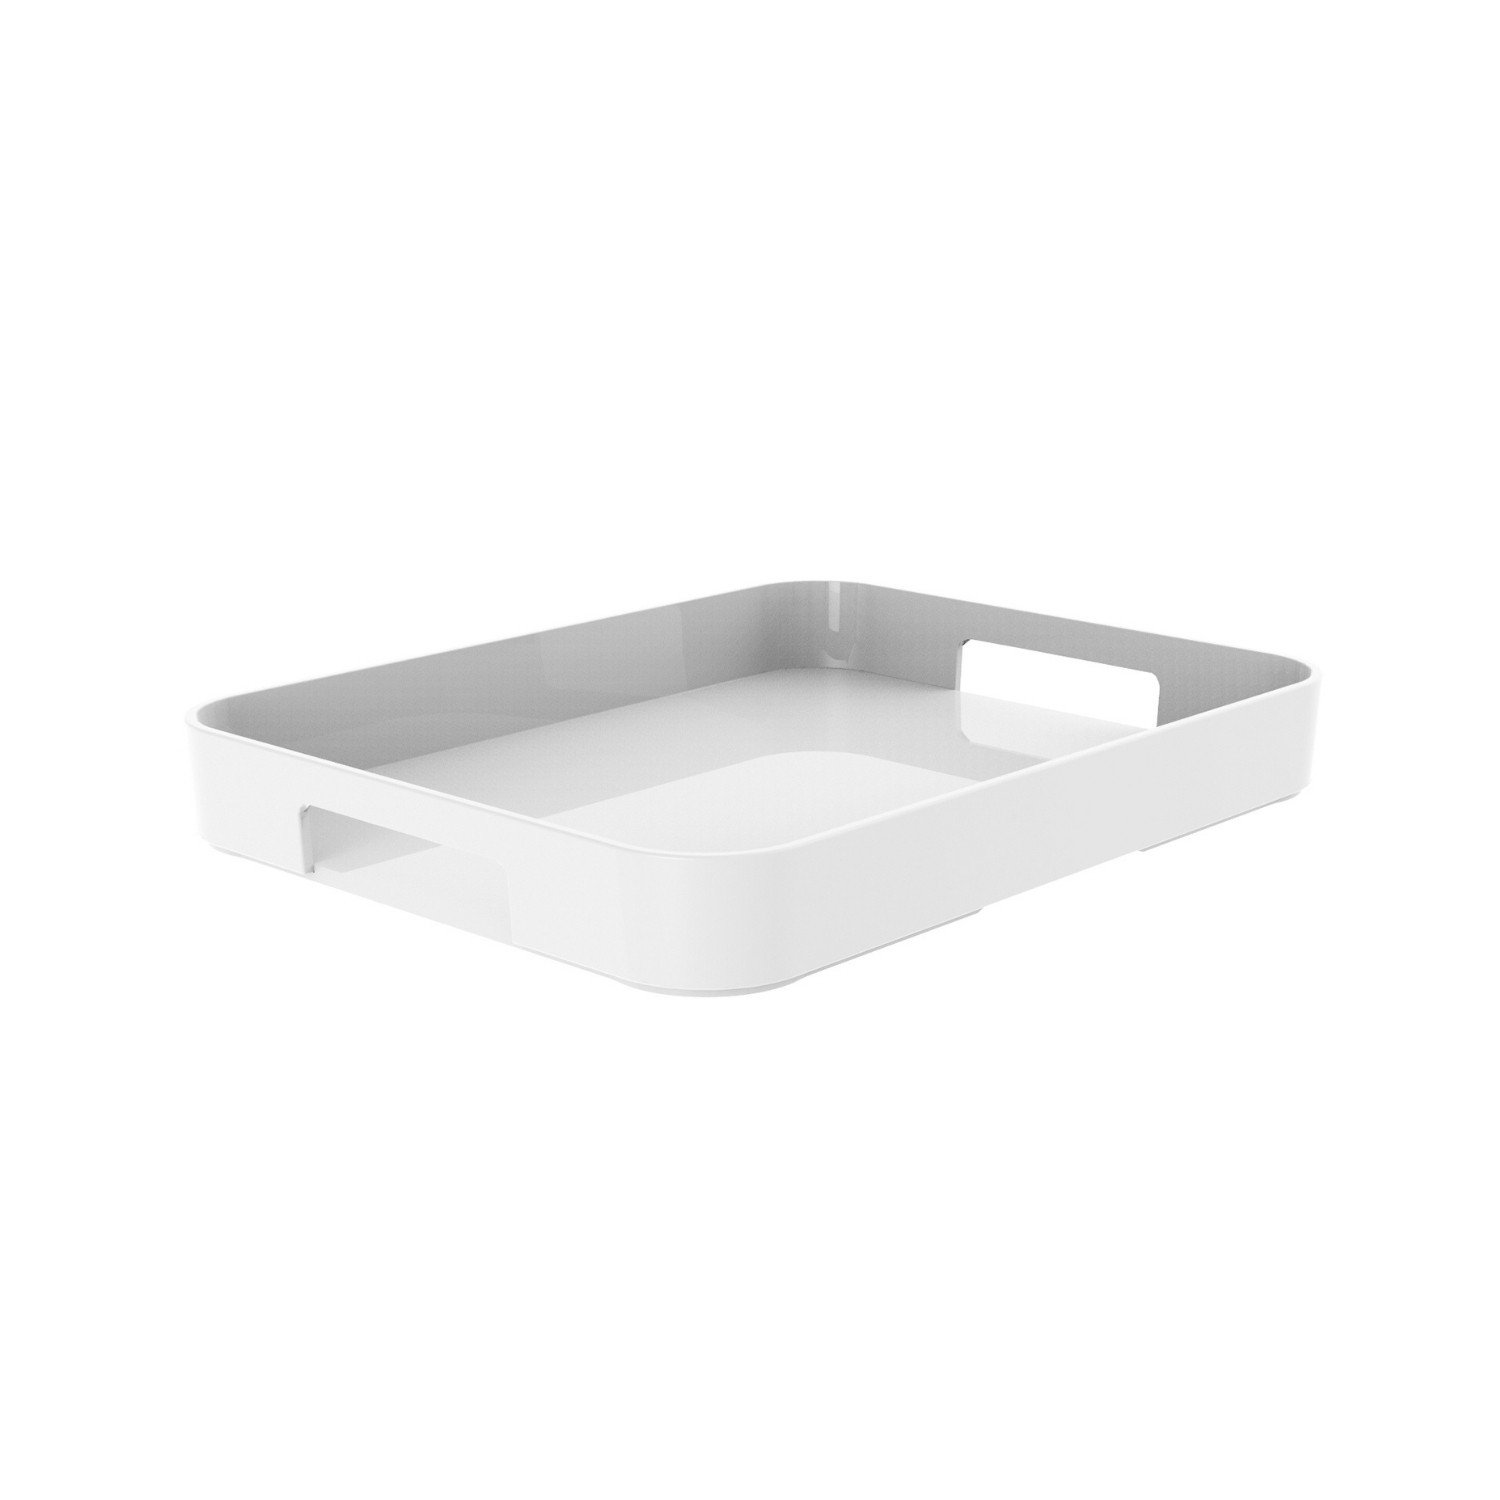 GALLERY - Plateau rectangulaire L